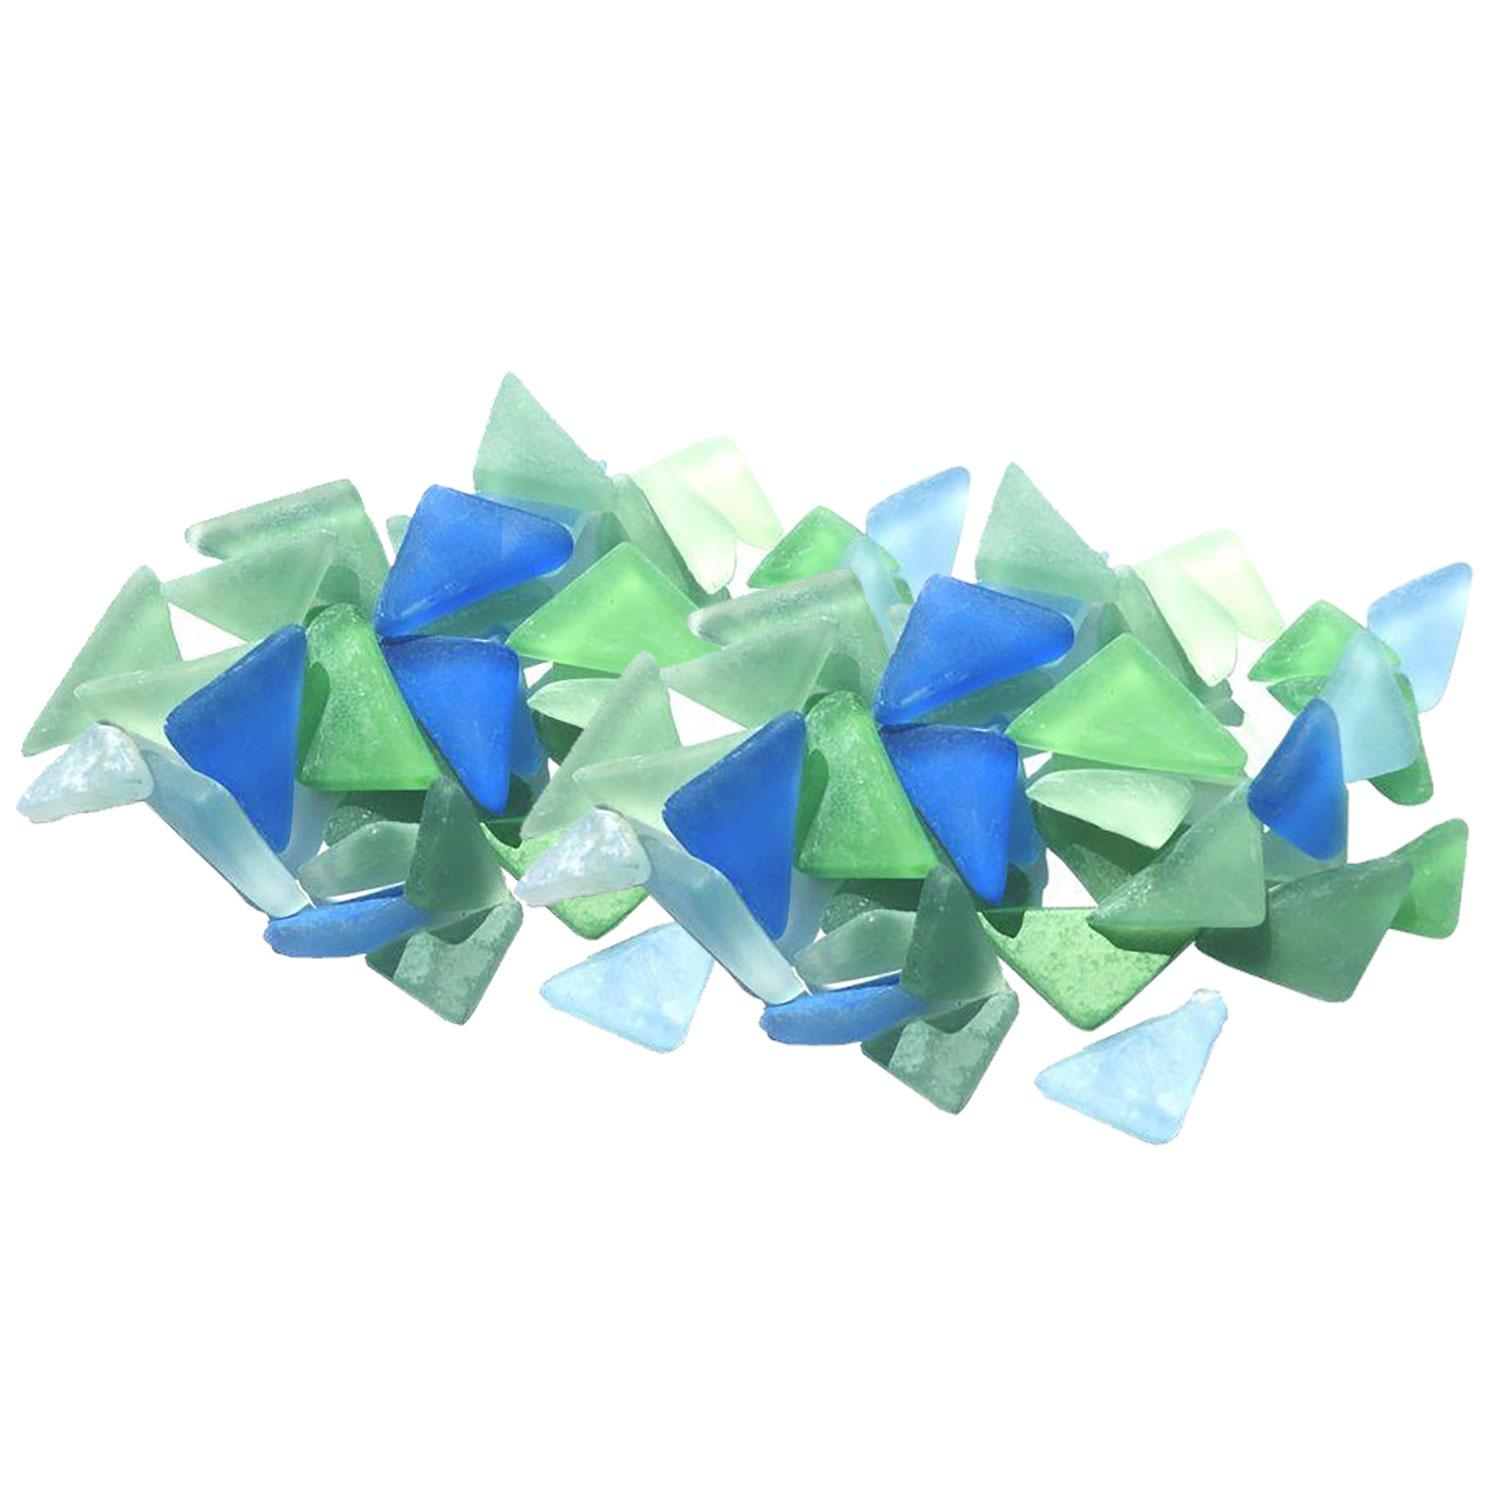 Cobblestone Frosted Bay Glass Gems - 1 Lb